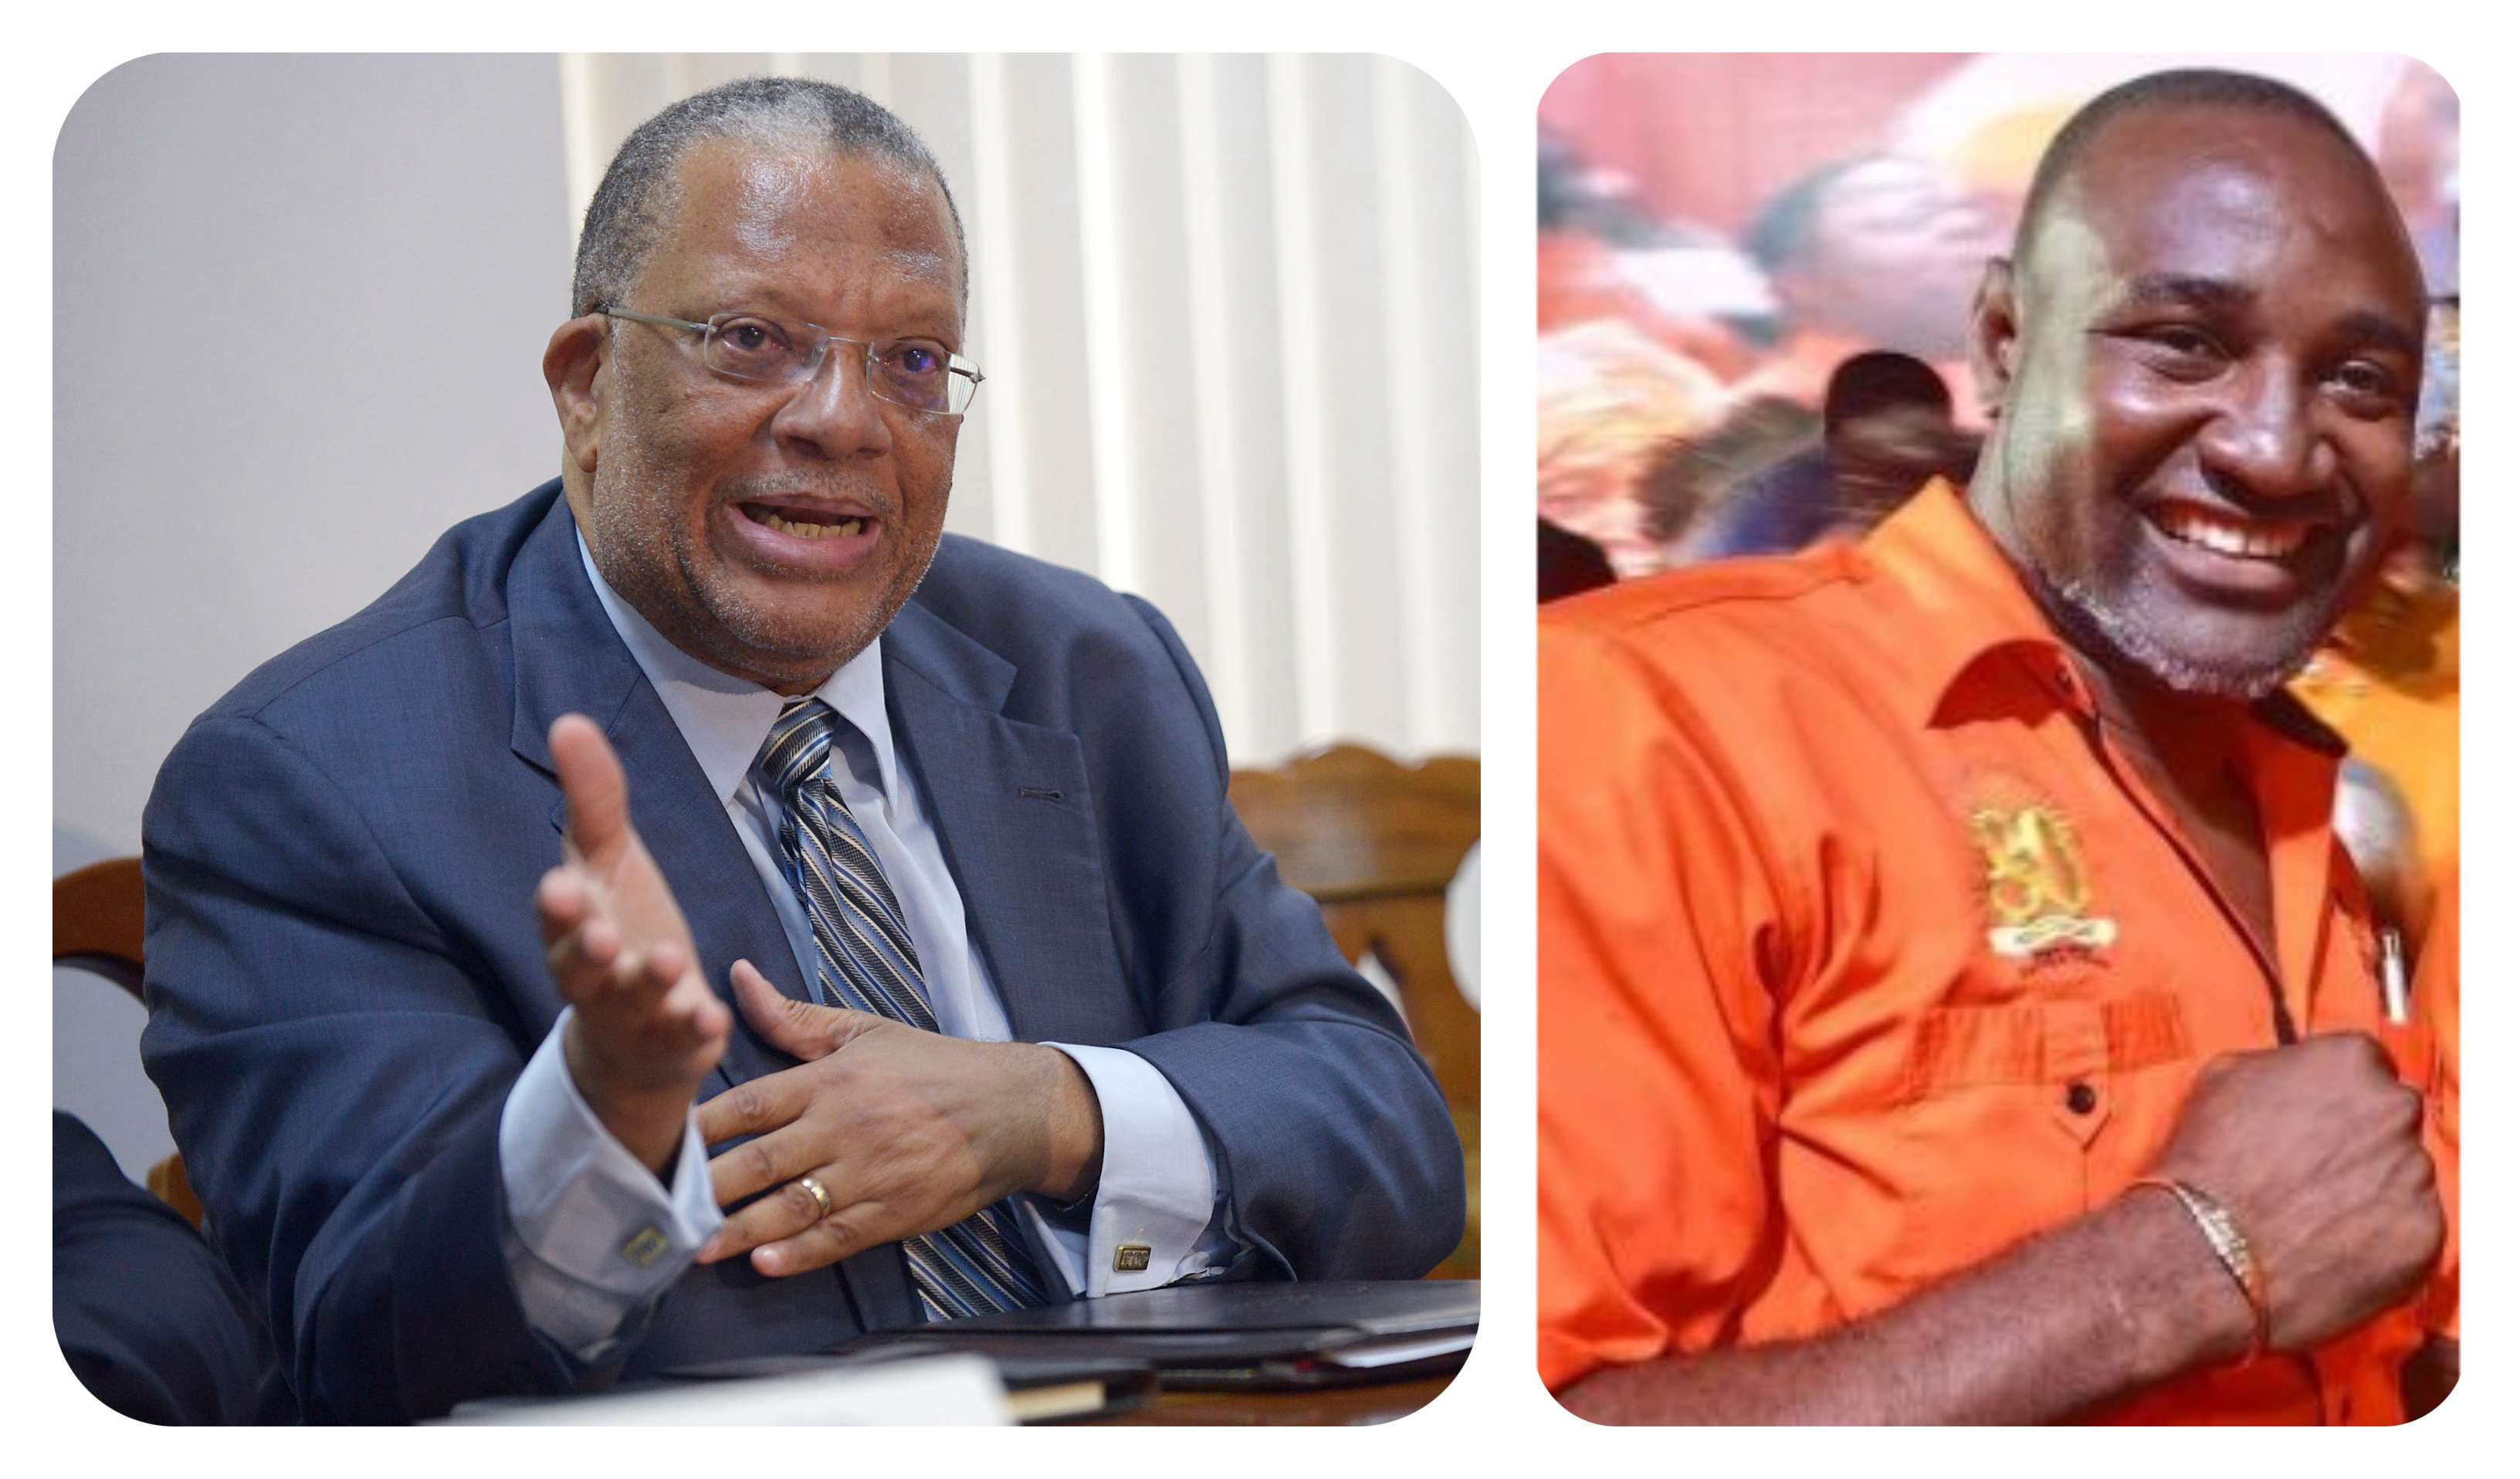 Phillips-Led PNP Can Win General Elections – Campbell